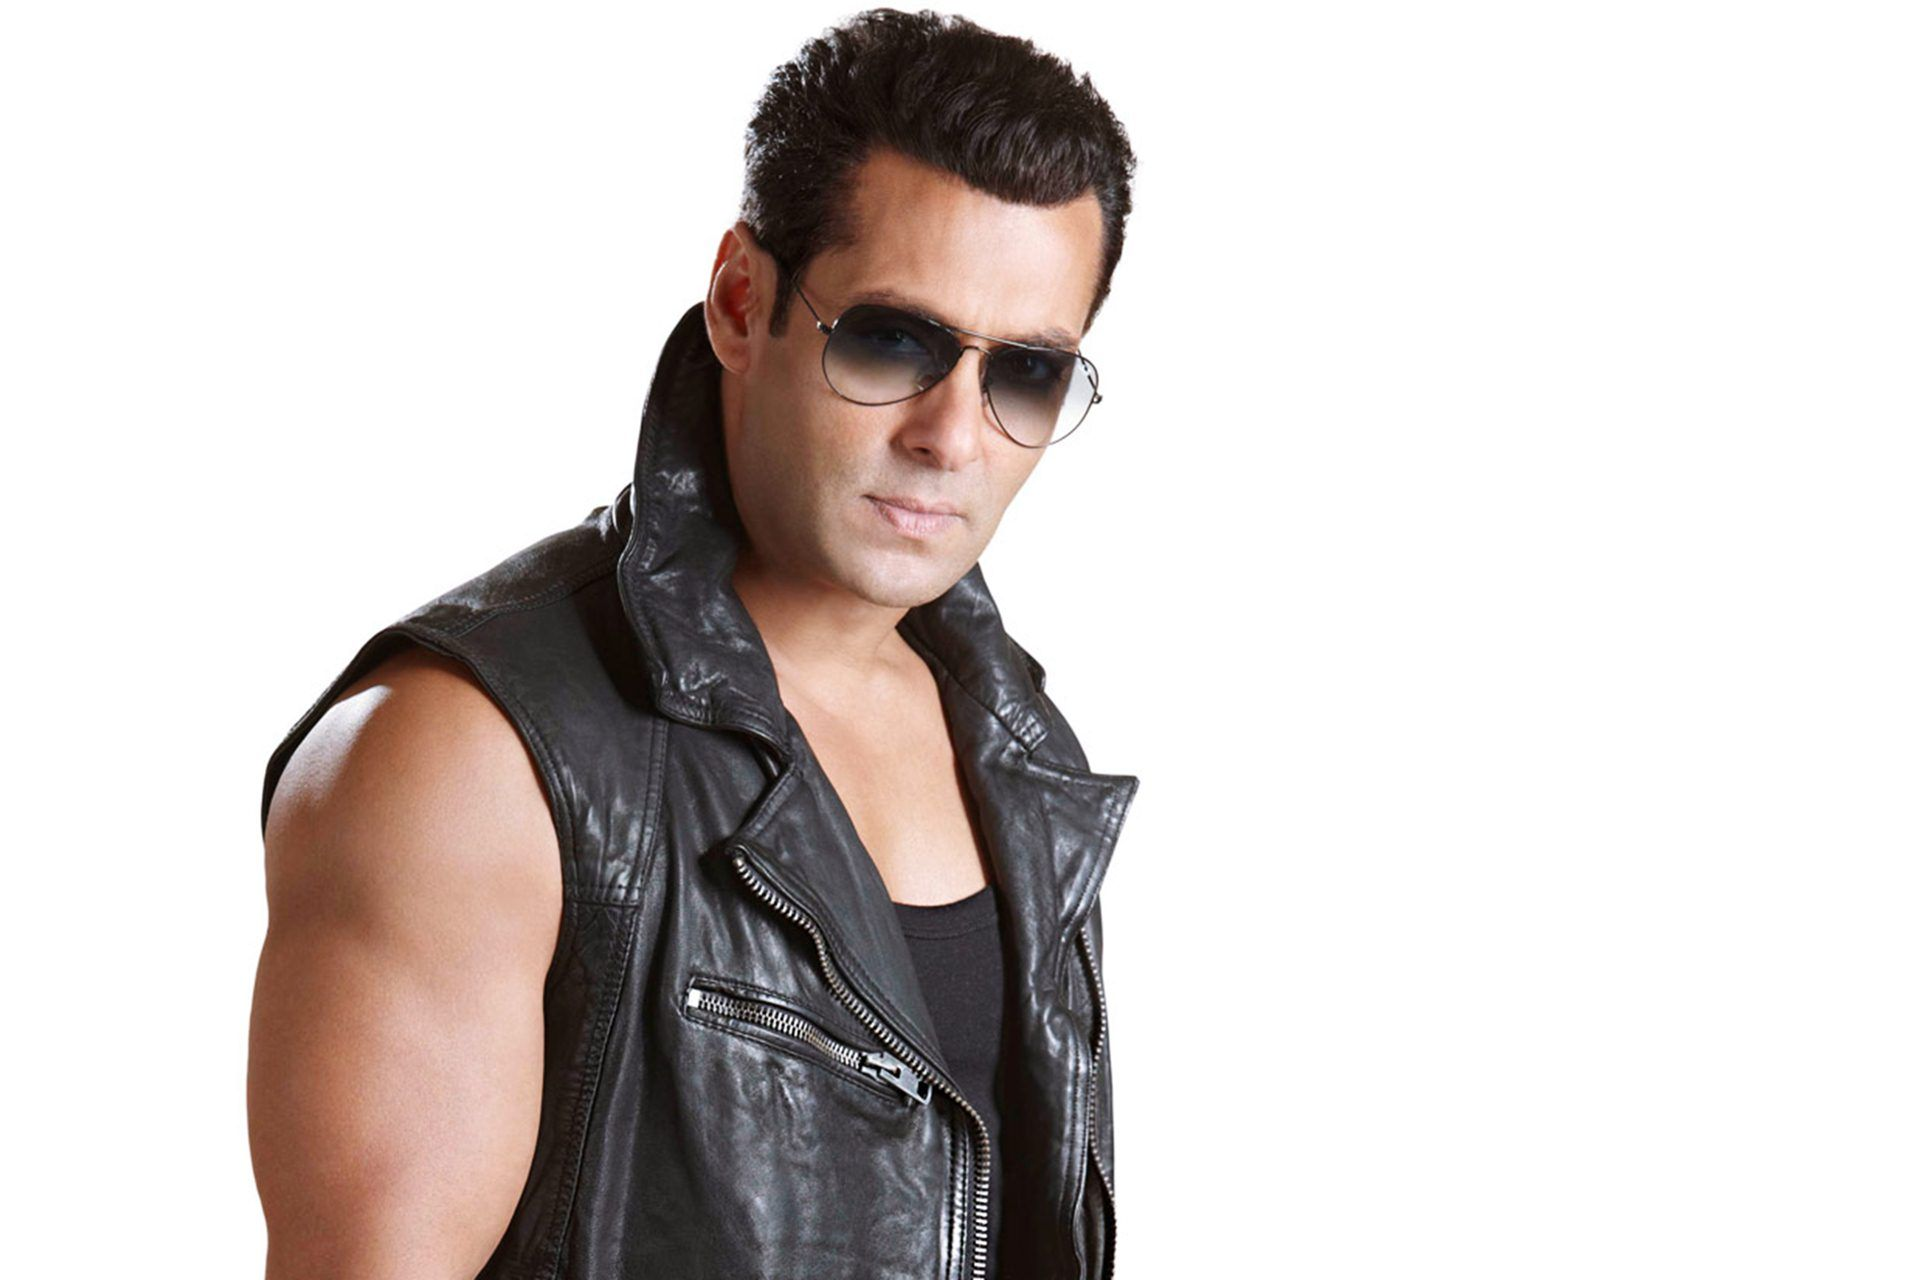 Download Free Hd Wallpapers Of Cool Bollywood Actor Salman Khan